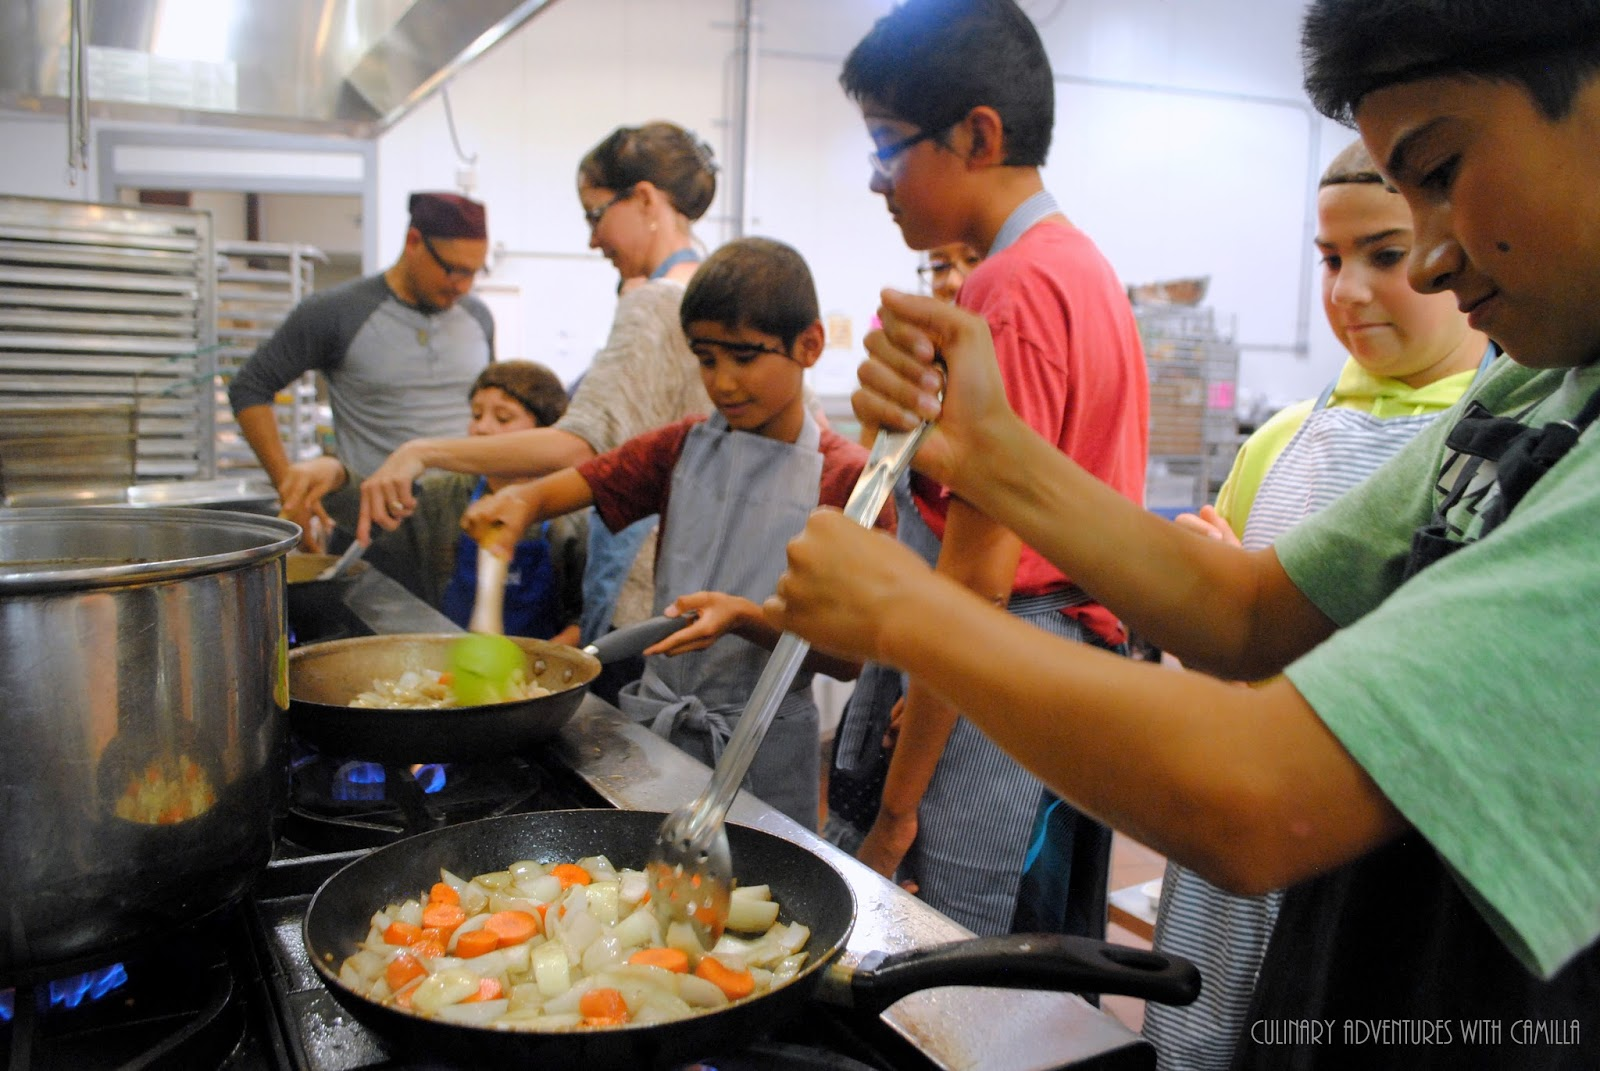 Culinary Adventures with Camilla: Mole Making Class and Mole Poblano for #CooktheBooks